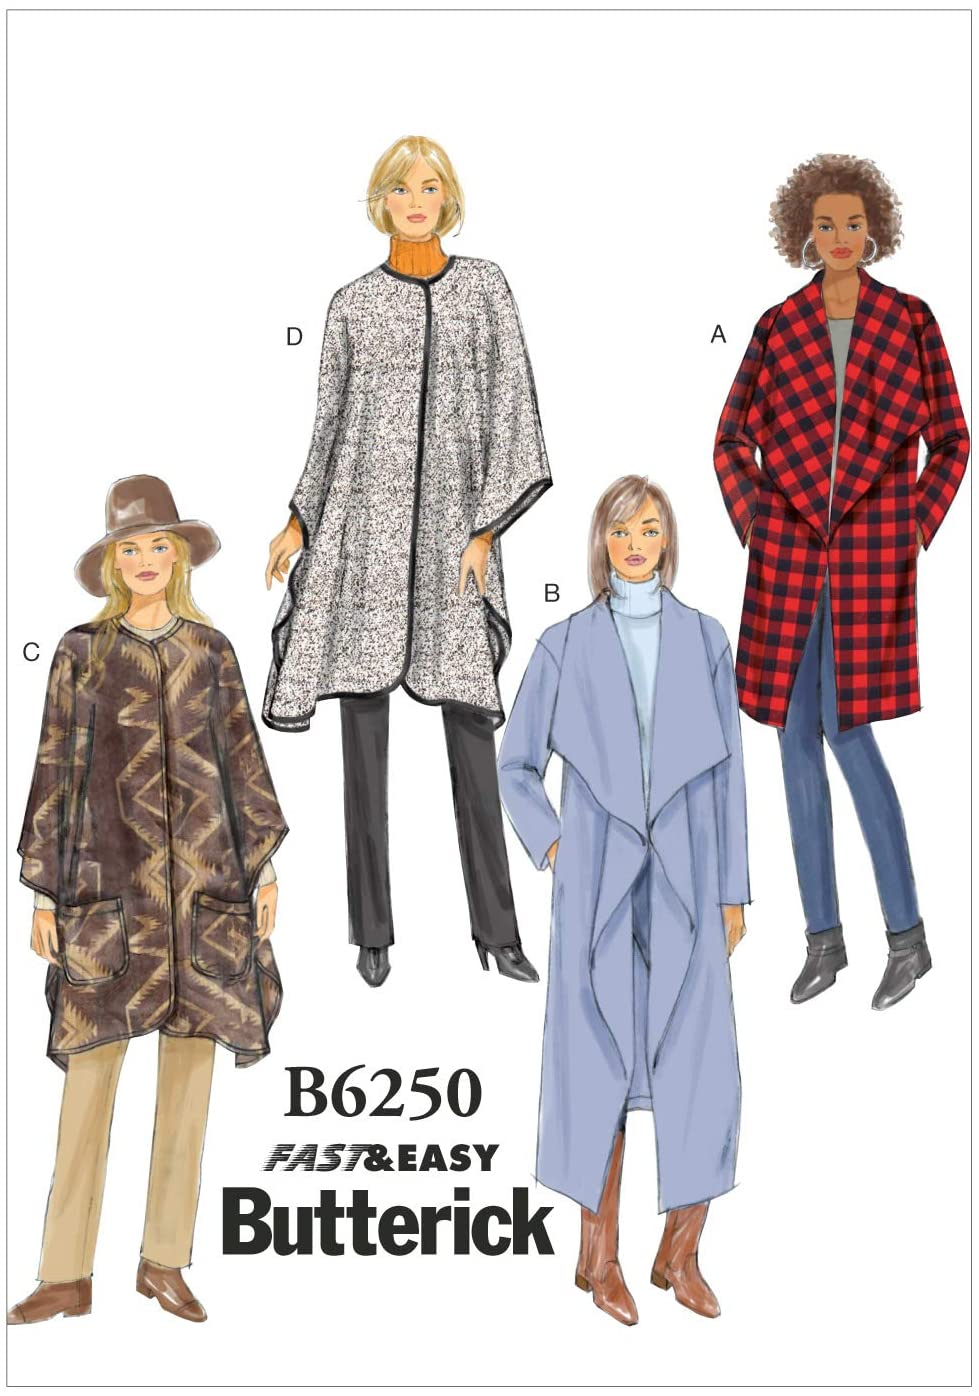 BUTTERICK PATTERNS B62500Y0 Misses Jacket, Coat and Wrap, Y (XSM-SML-MED)